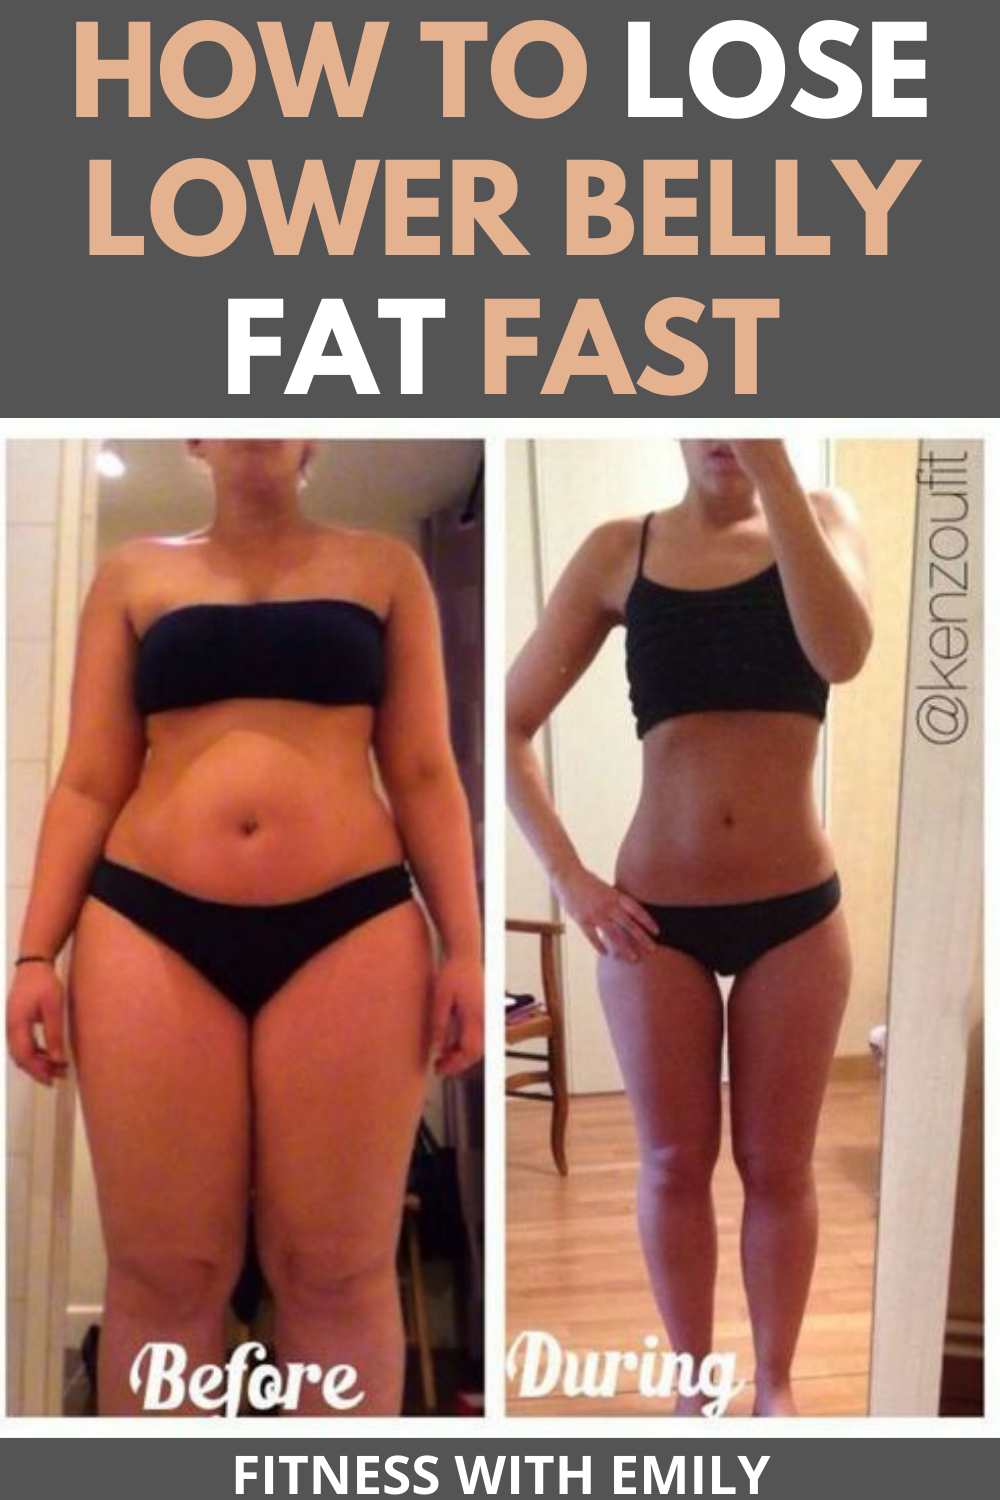 Easy Tips To Lose BELLY FAT From the First WEEK!